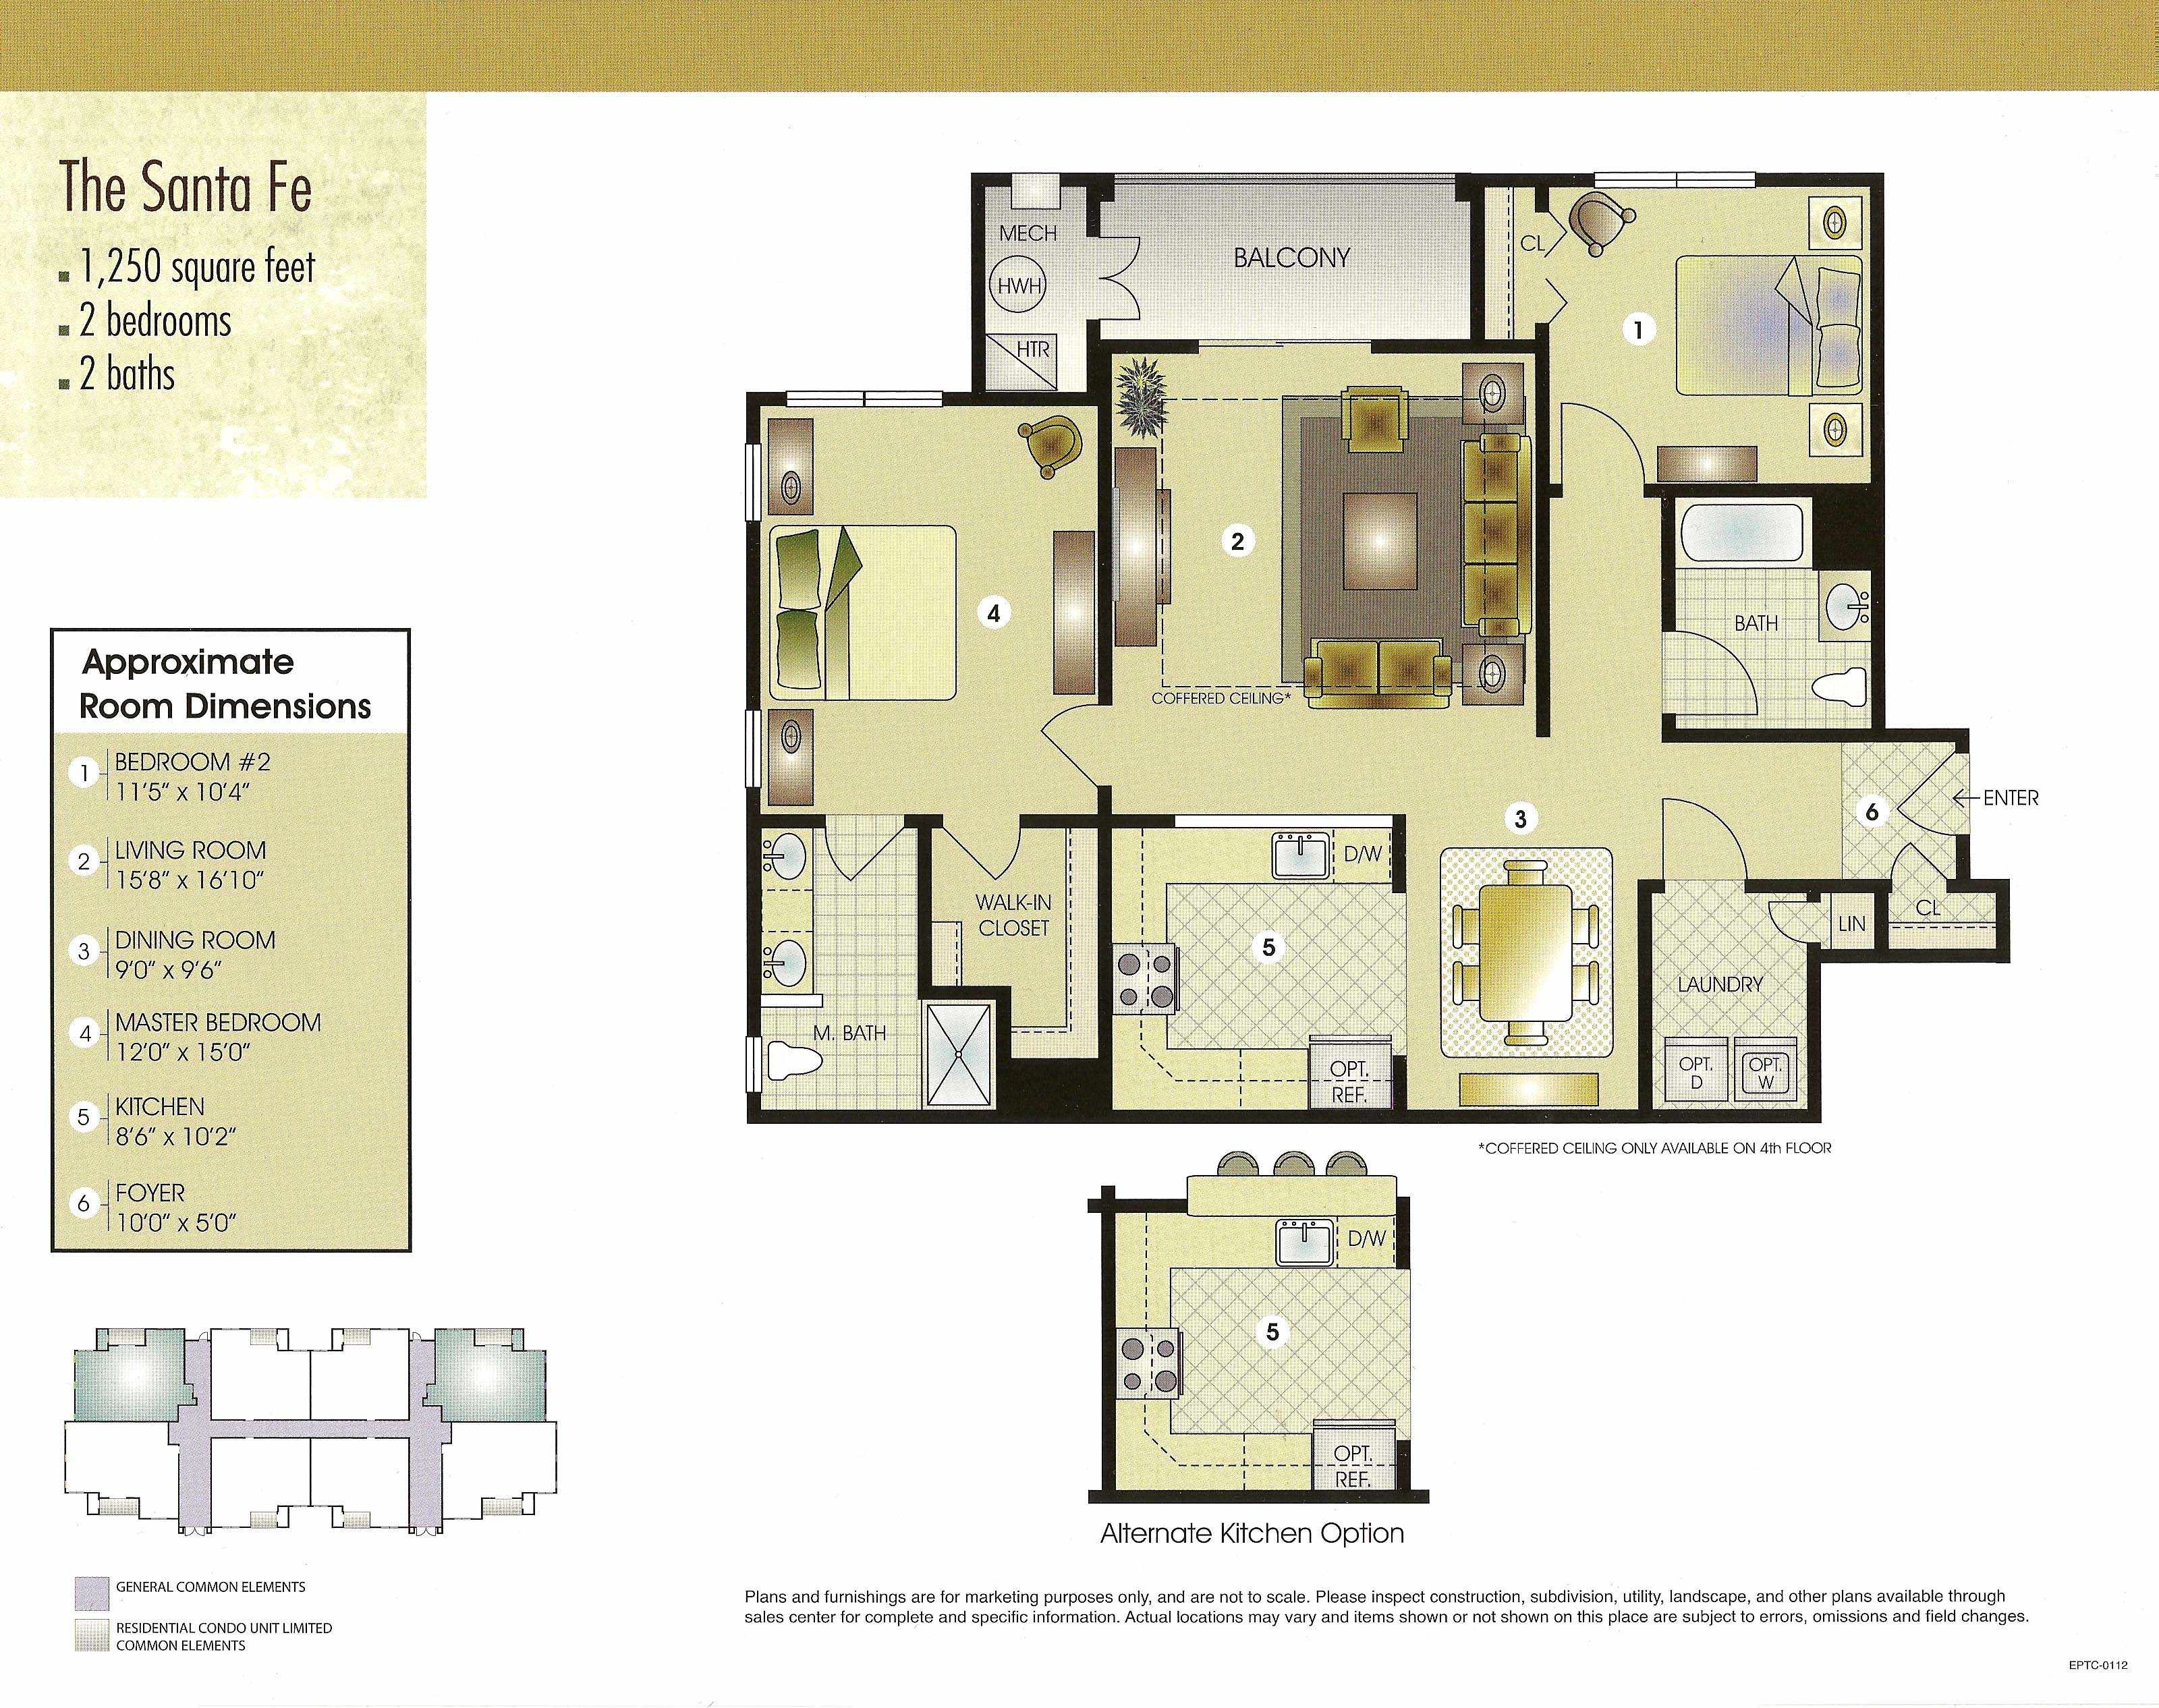 The Santa Fe Floor Plan